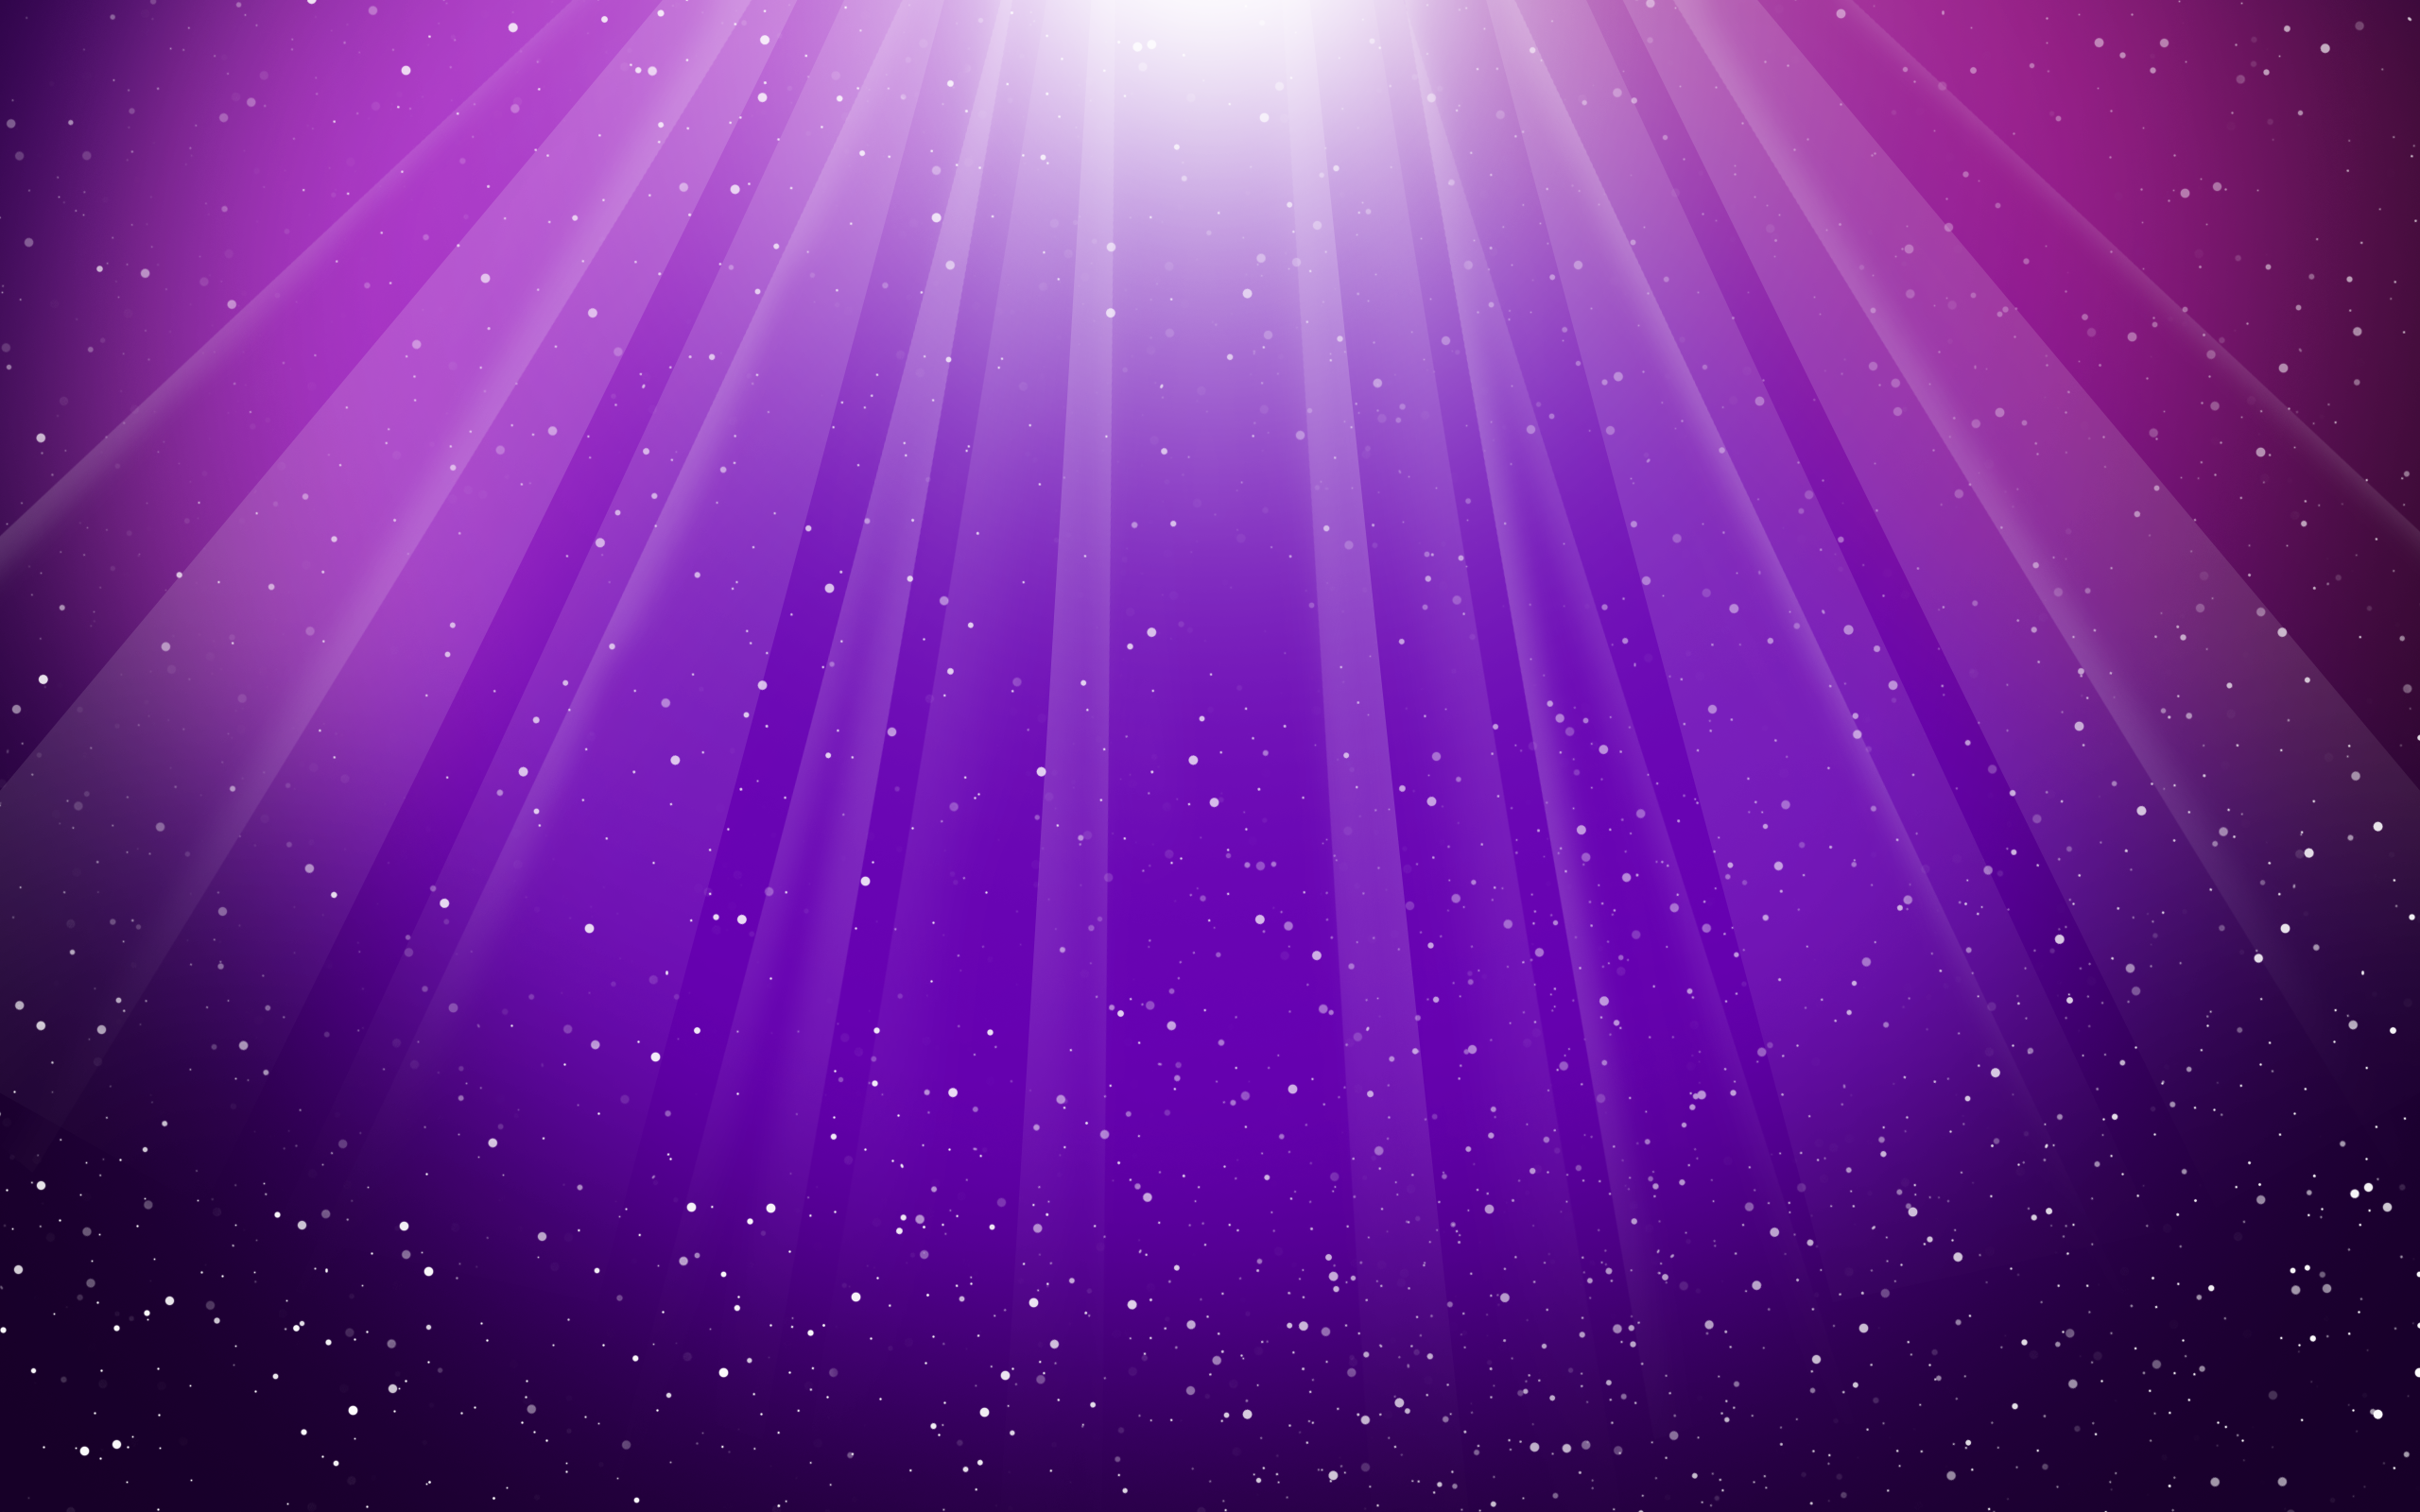 Purple  High Definition Purple Wallpaper Images For Free Download